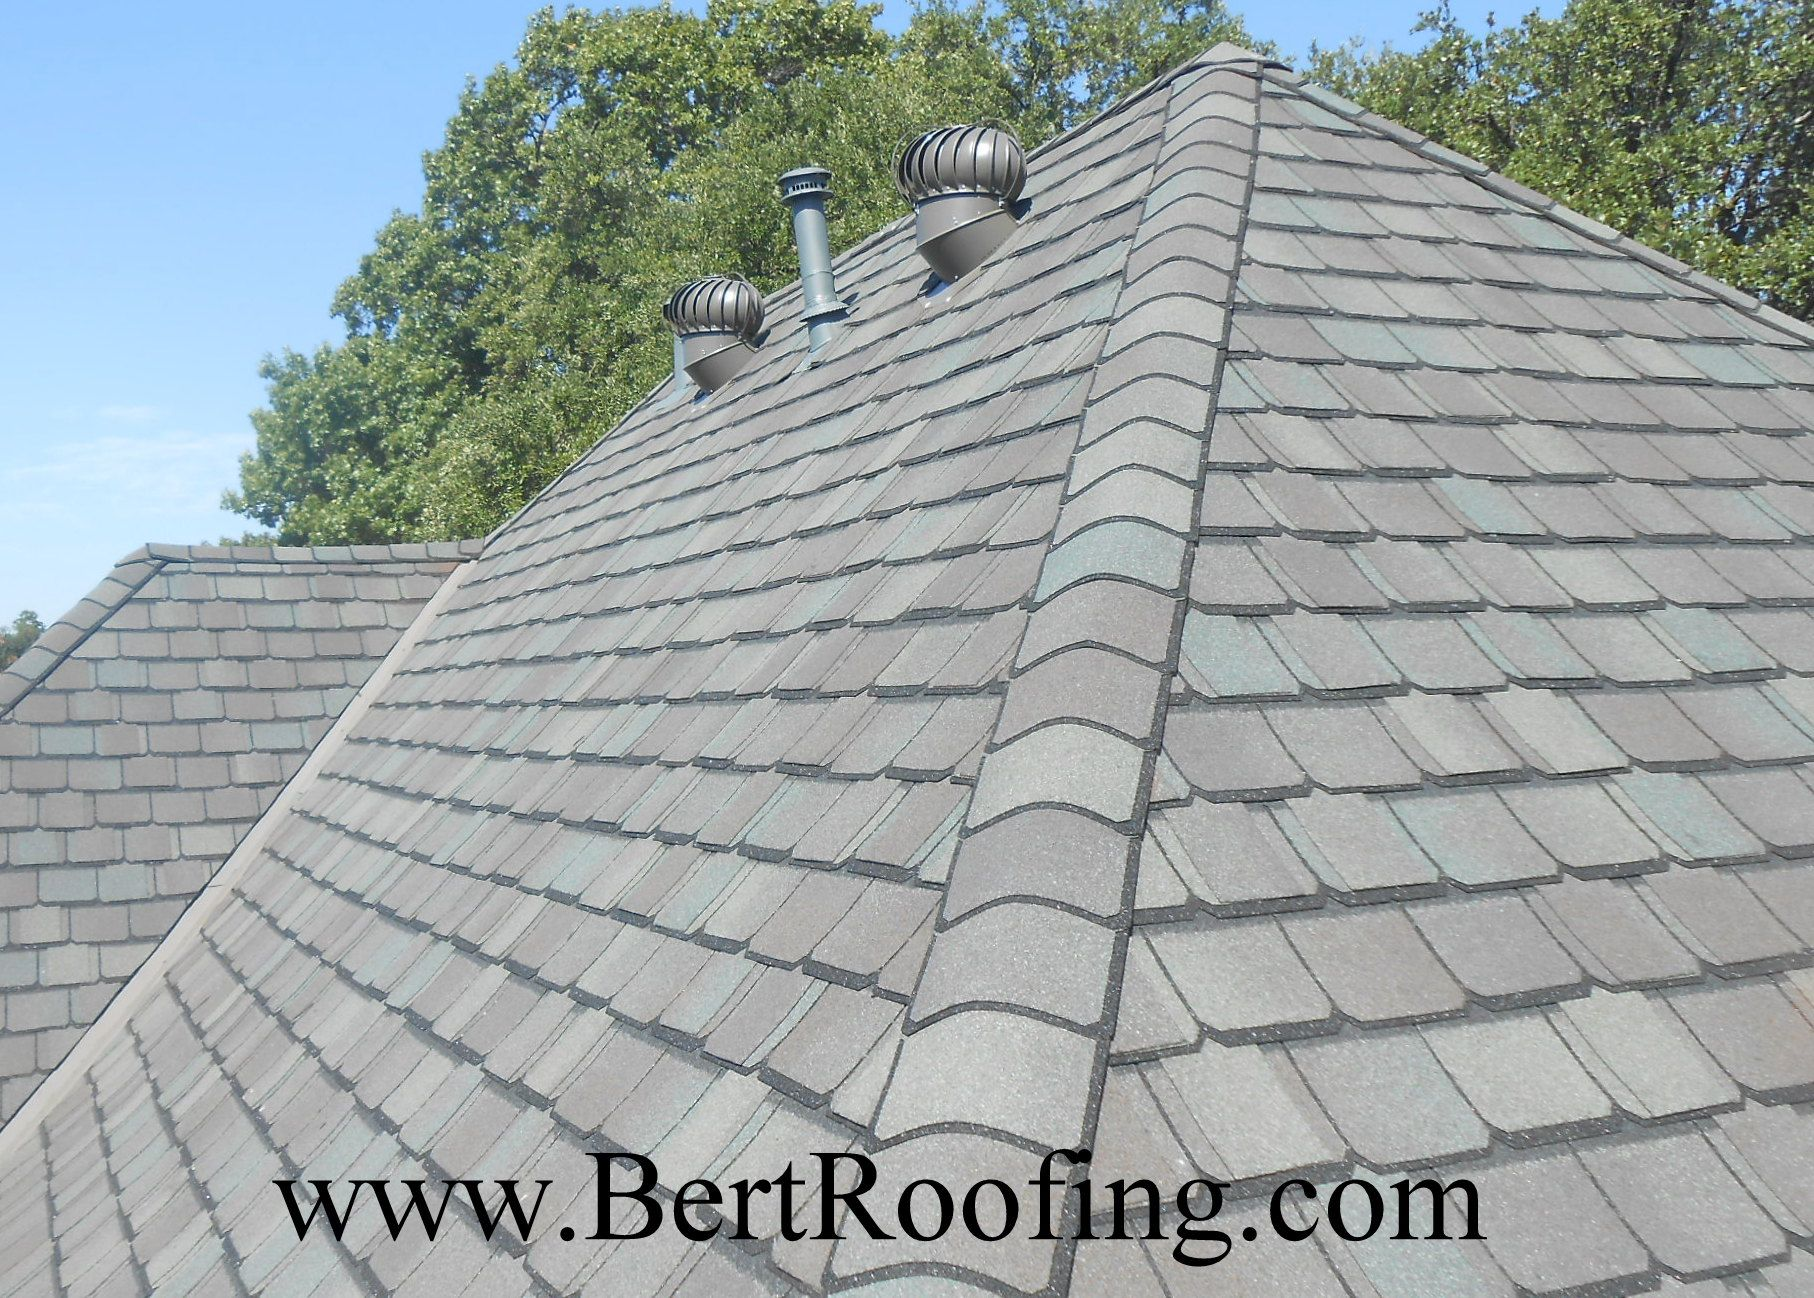 Certainteed Grand Manor Composition Shingle Color Gatehouse Slate Installed By Bert Roofing Inc Of Dallas In Dallas On Septem Roofing Shingling Roof Shingles